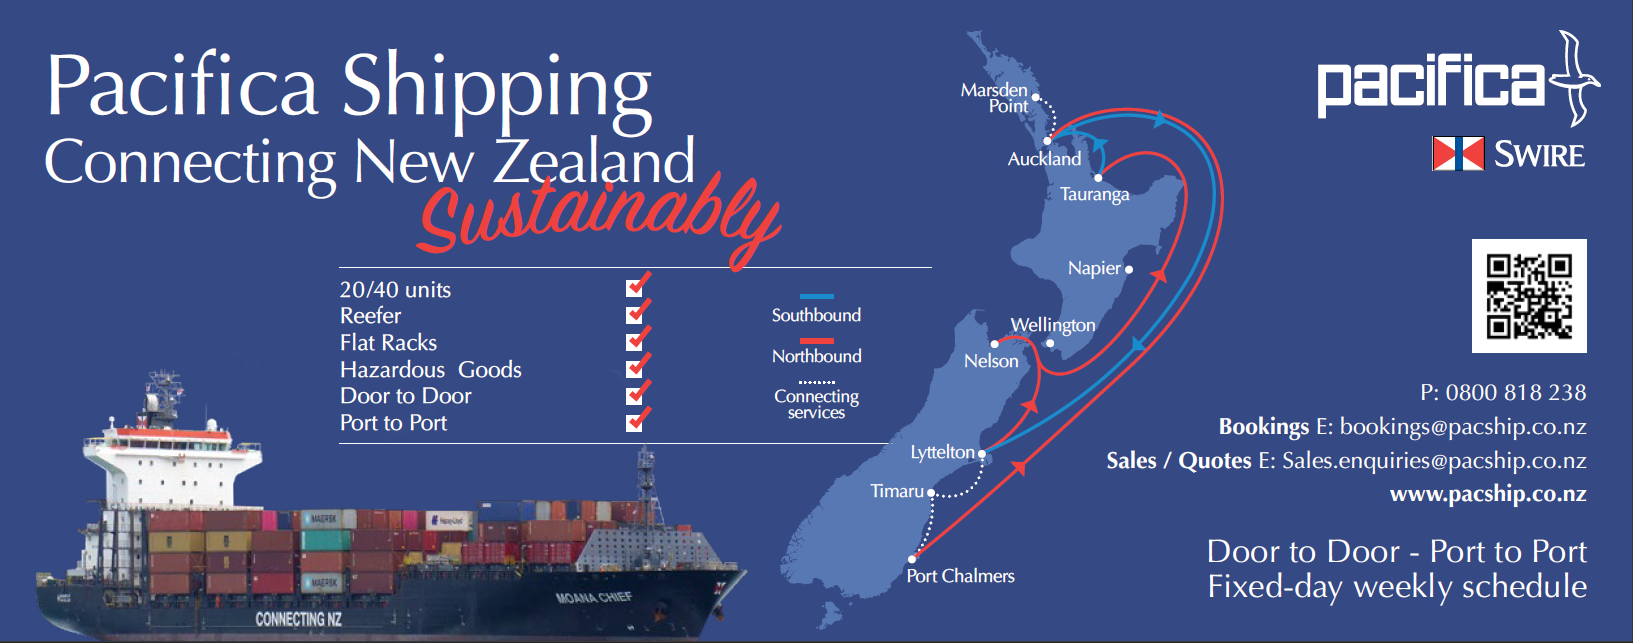 Pacifica Shipping - Connecting New Zealand